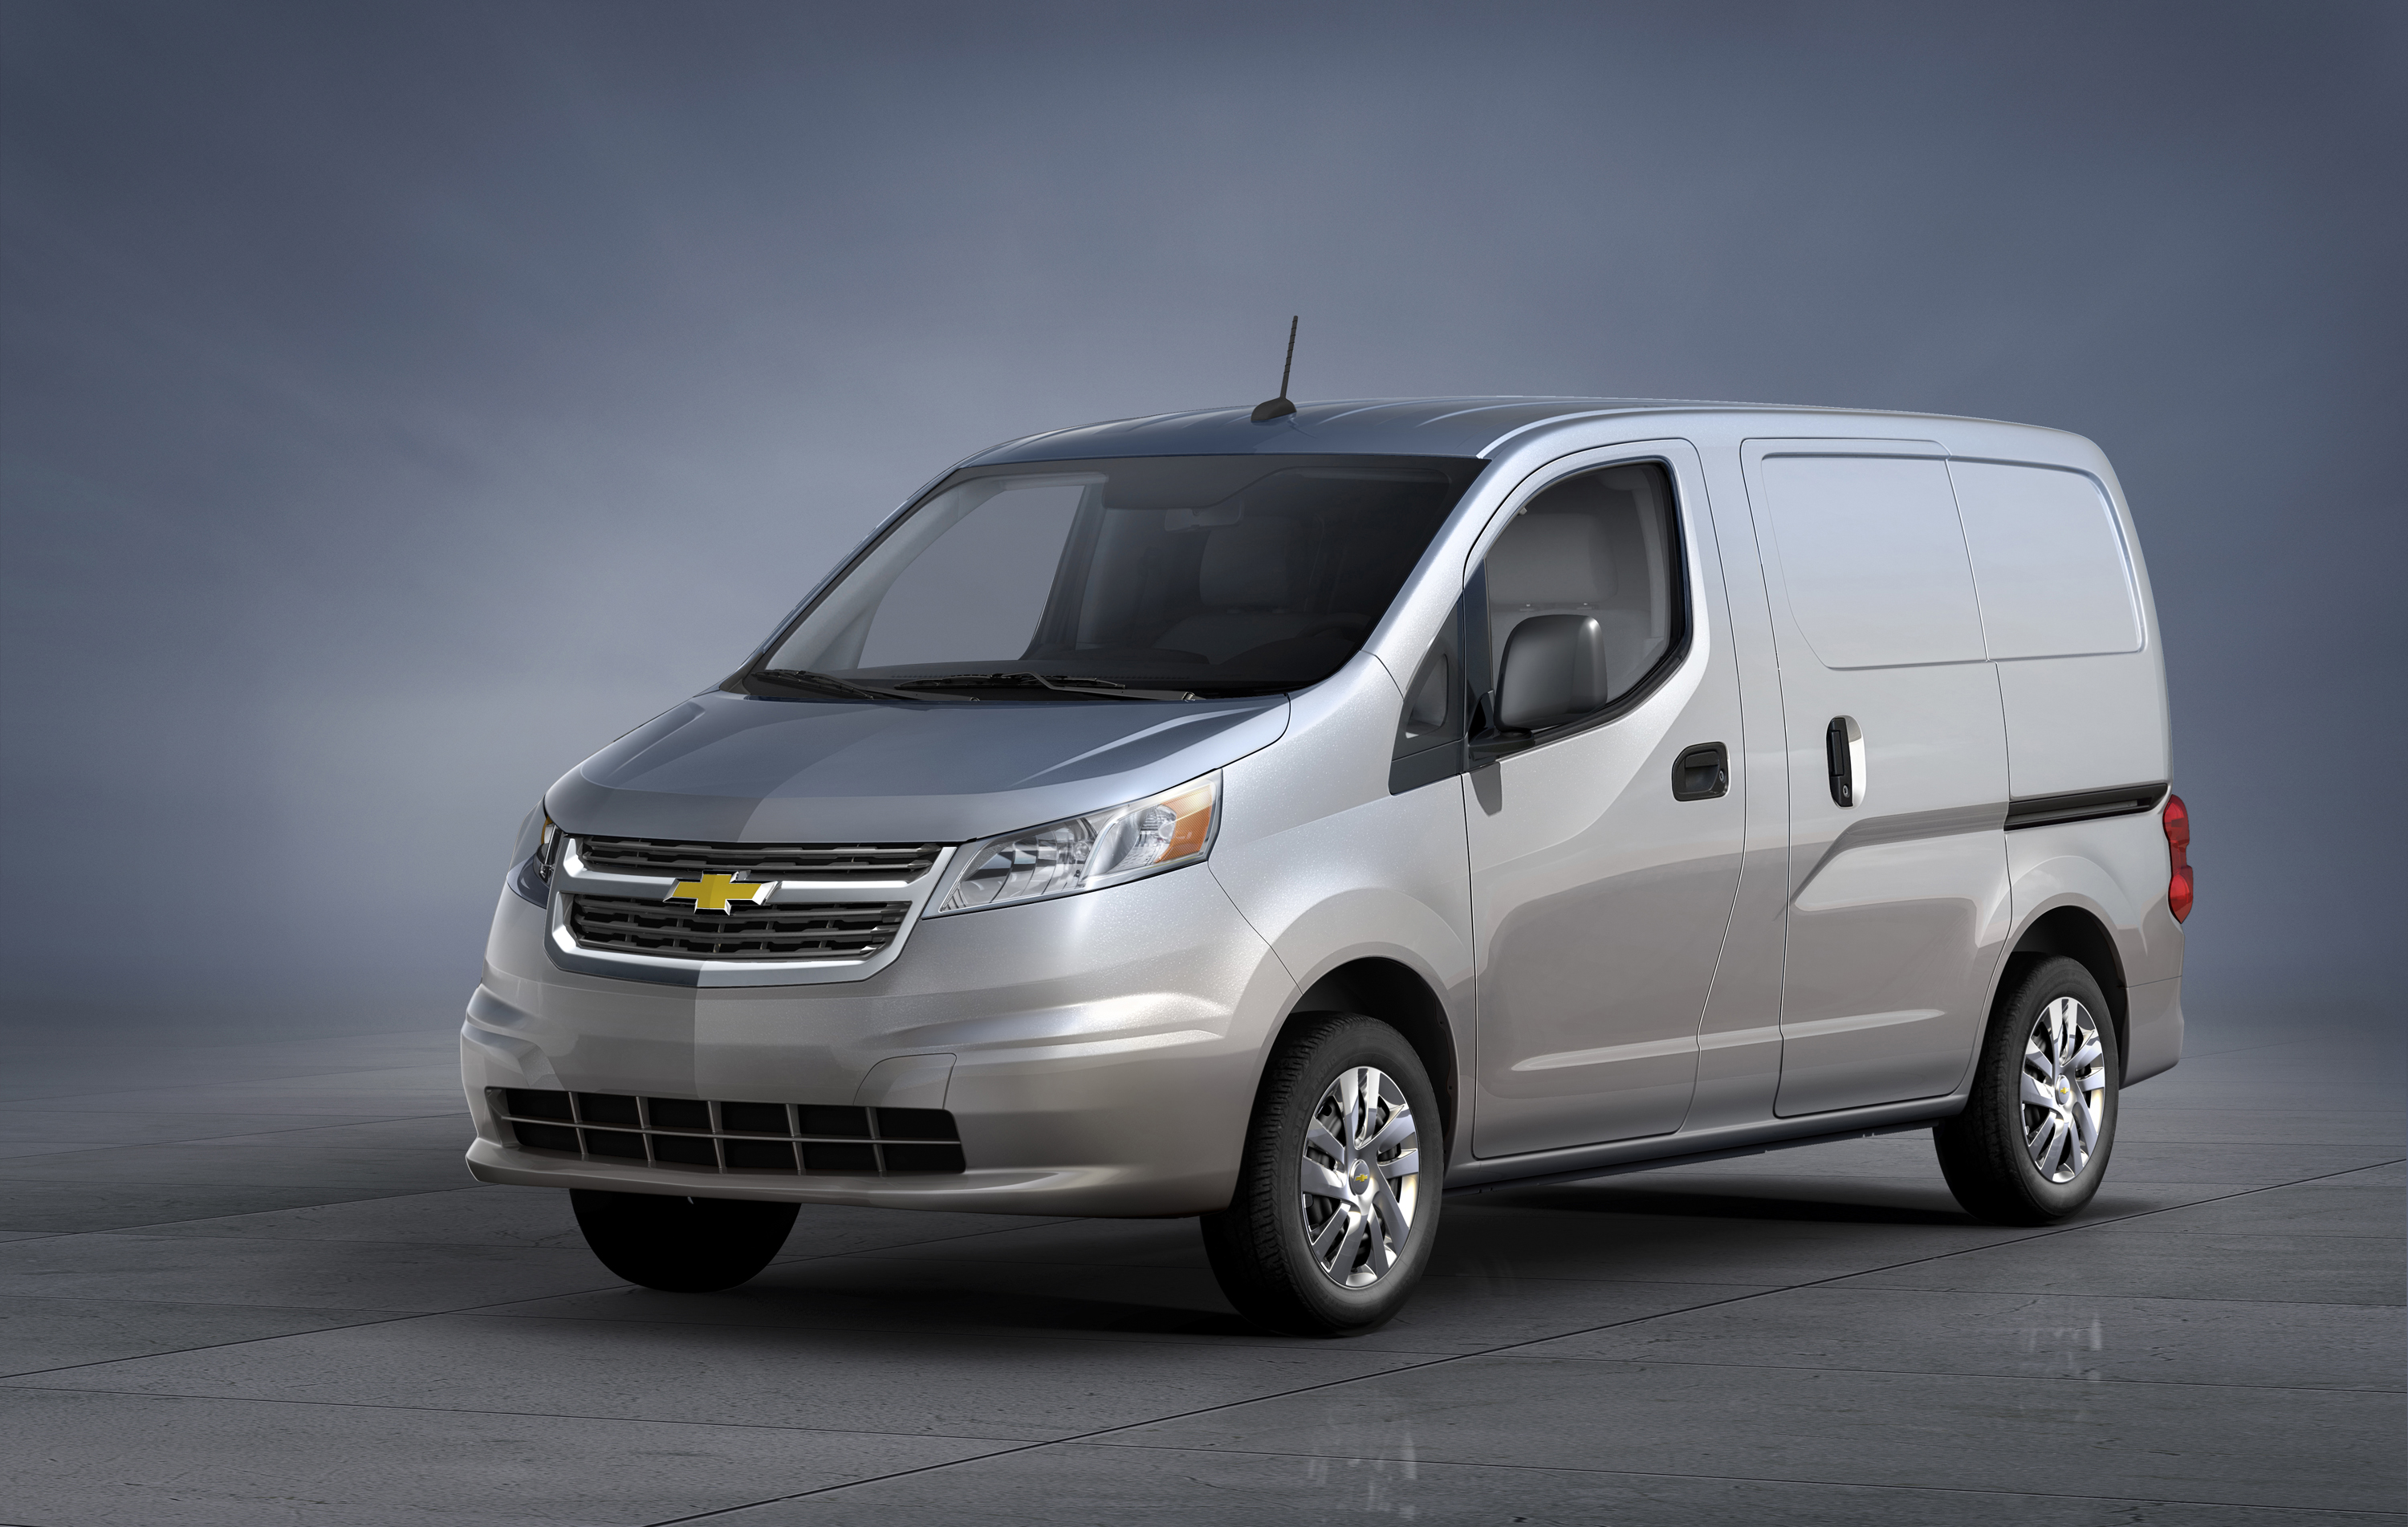 2015 Chevrolet City Express Gets 24 mpg in the City